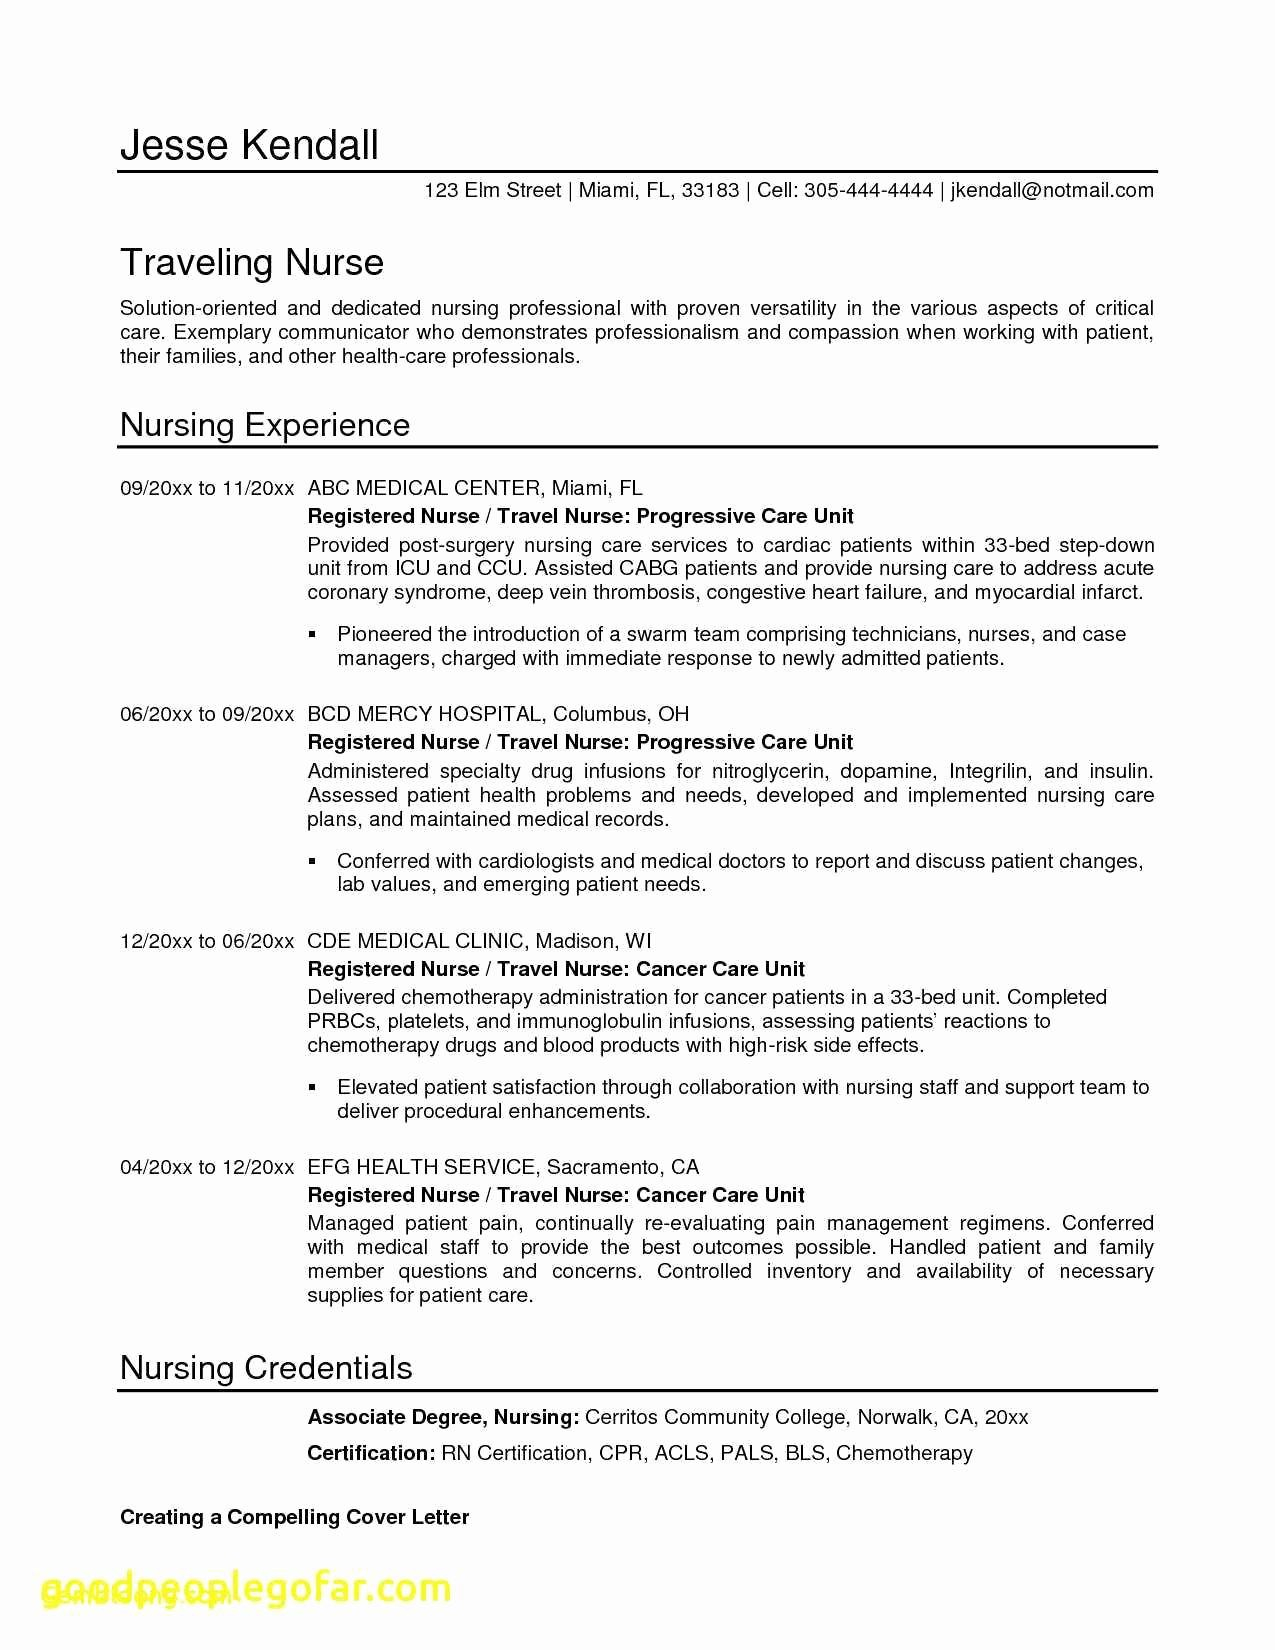 Professional Resume Sample - 24 Model Professional Resume